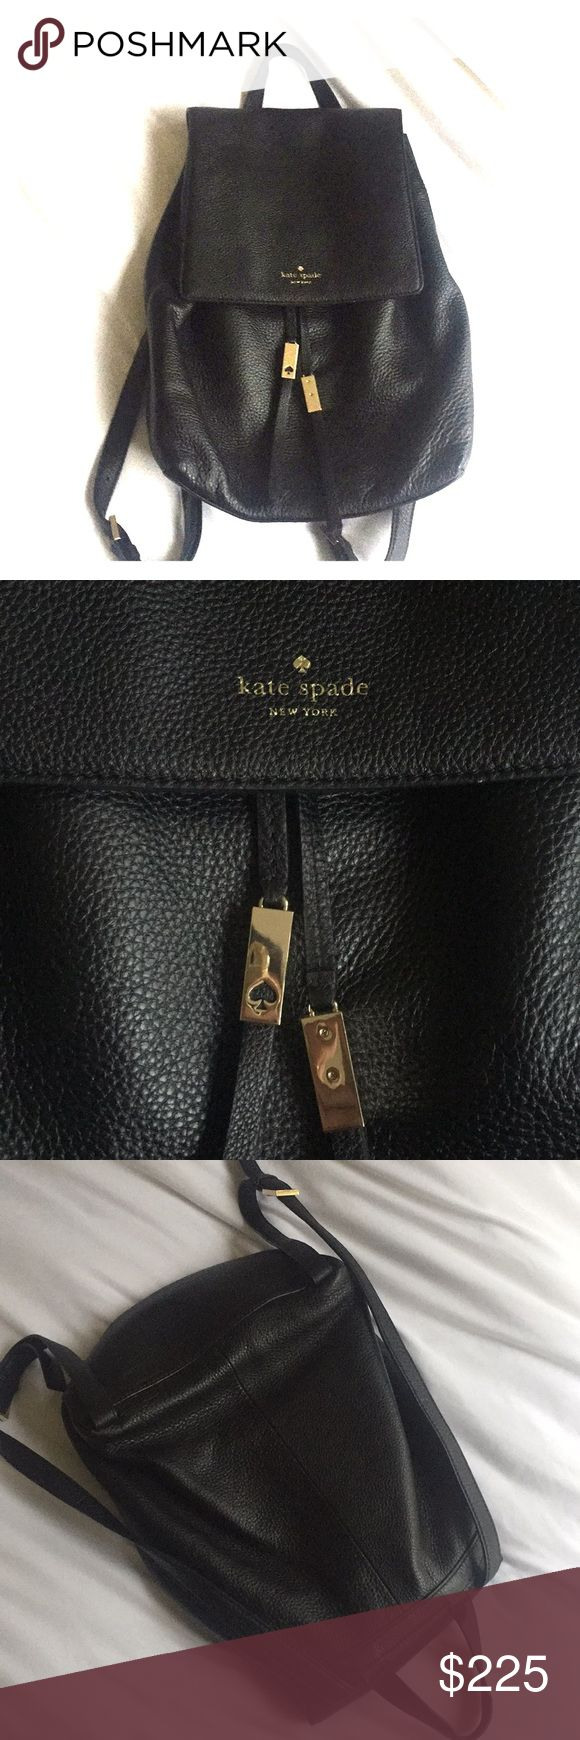 Kate Spade black backpack Gorgeous black backpack by Kate Spade. Brand new (used 3 times) • Gold accents and leather tassels make this practical bag super fun!  • Can fit small laptops  No trades please :) kate spade Bags Backpacks